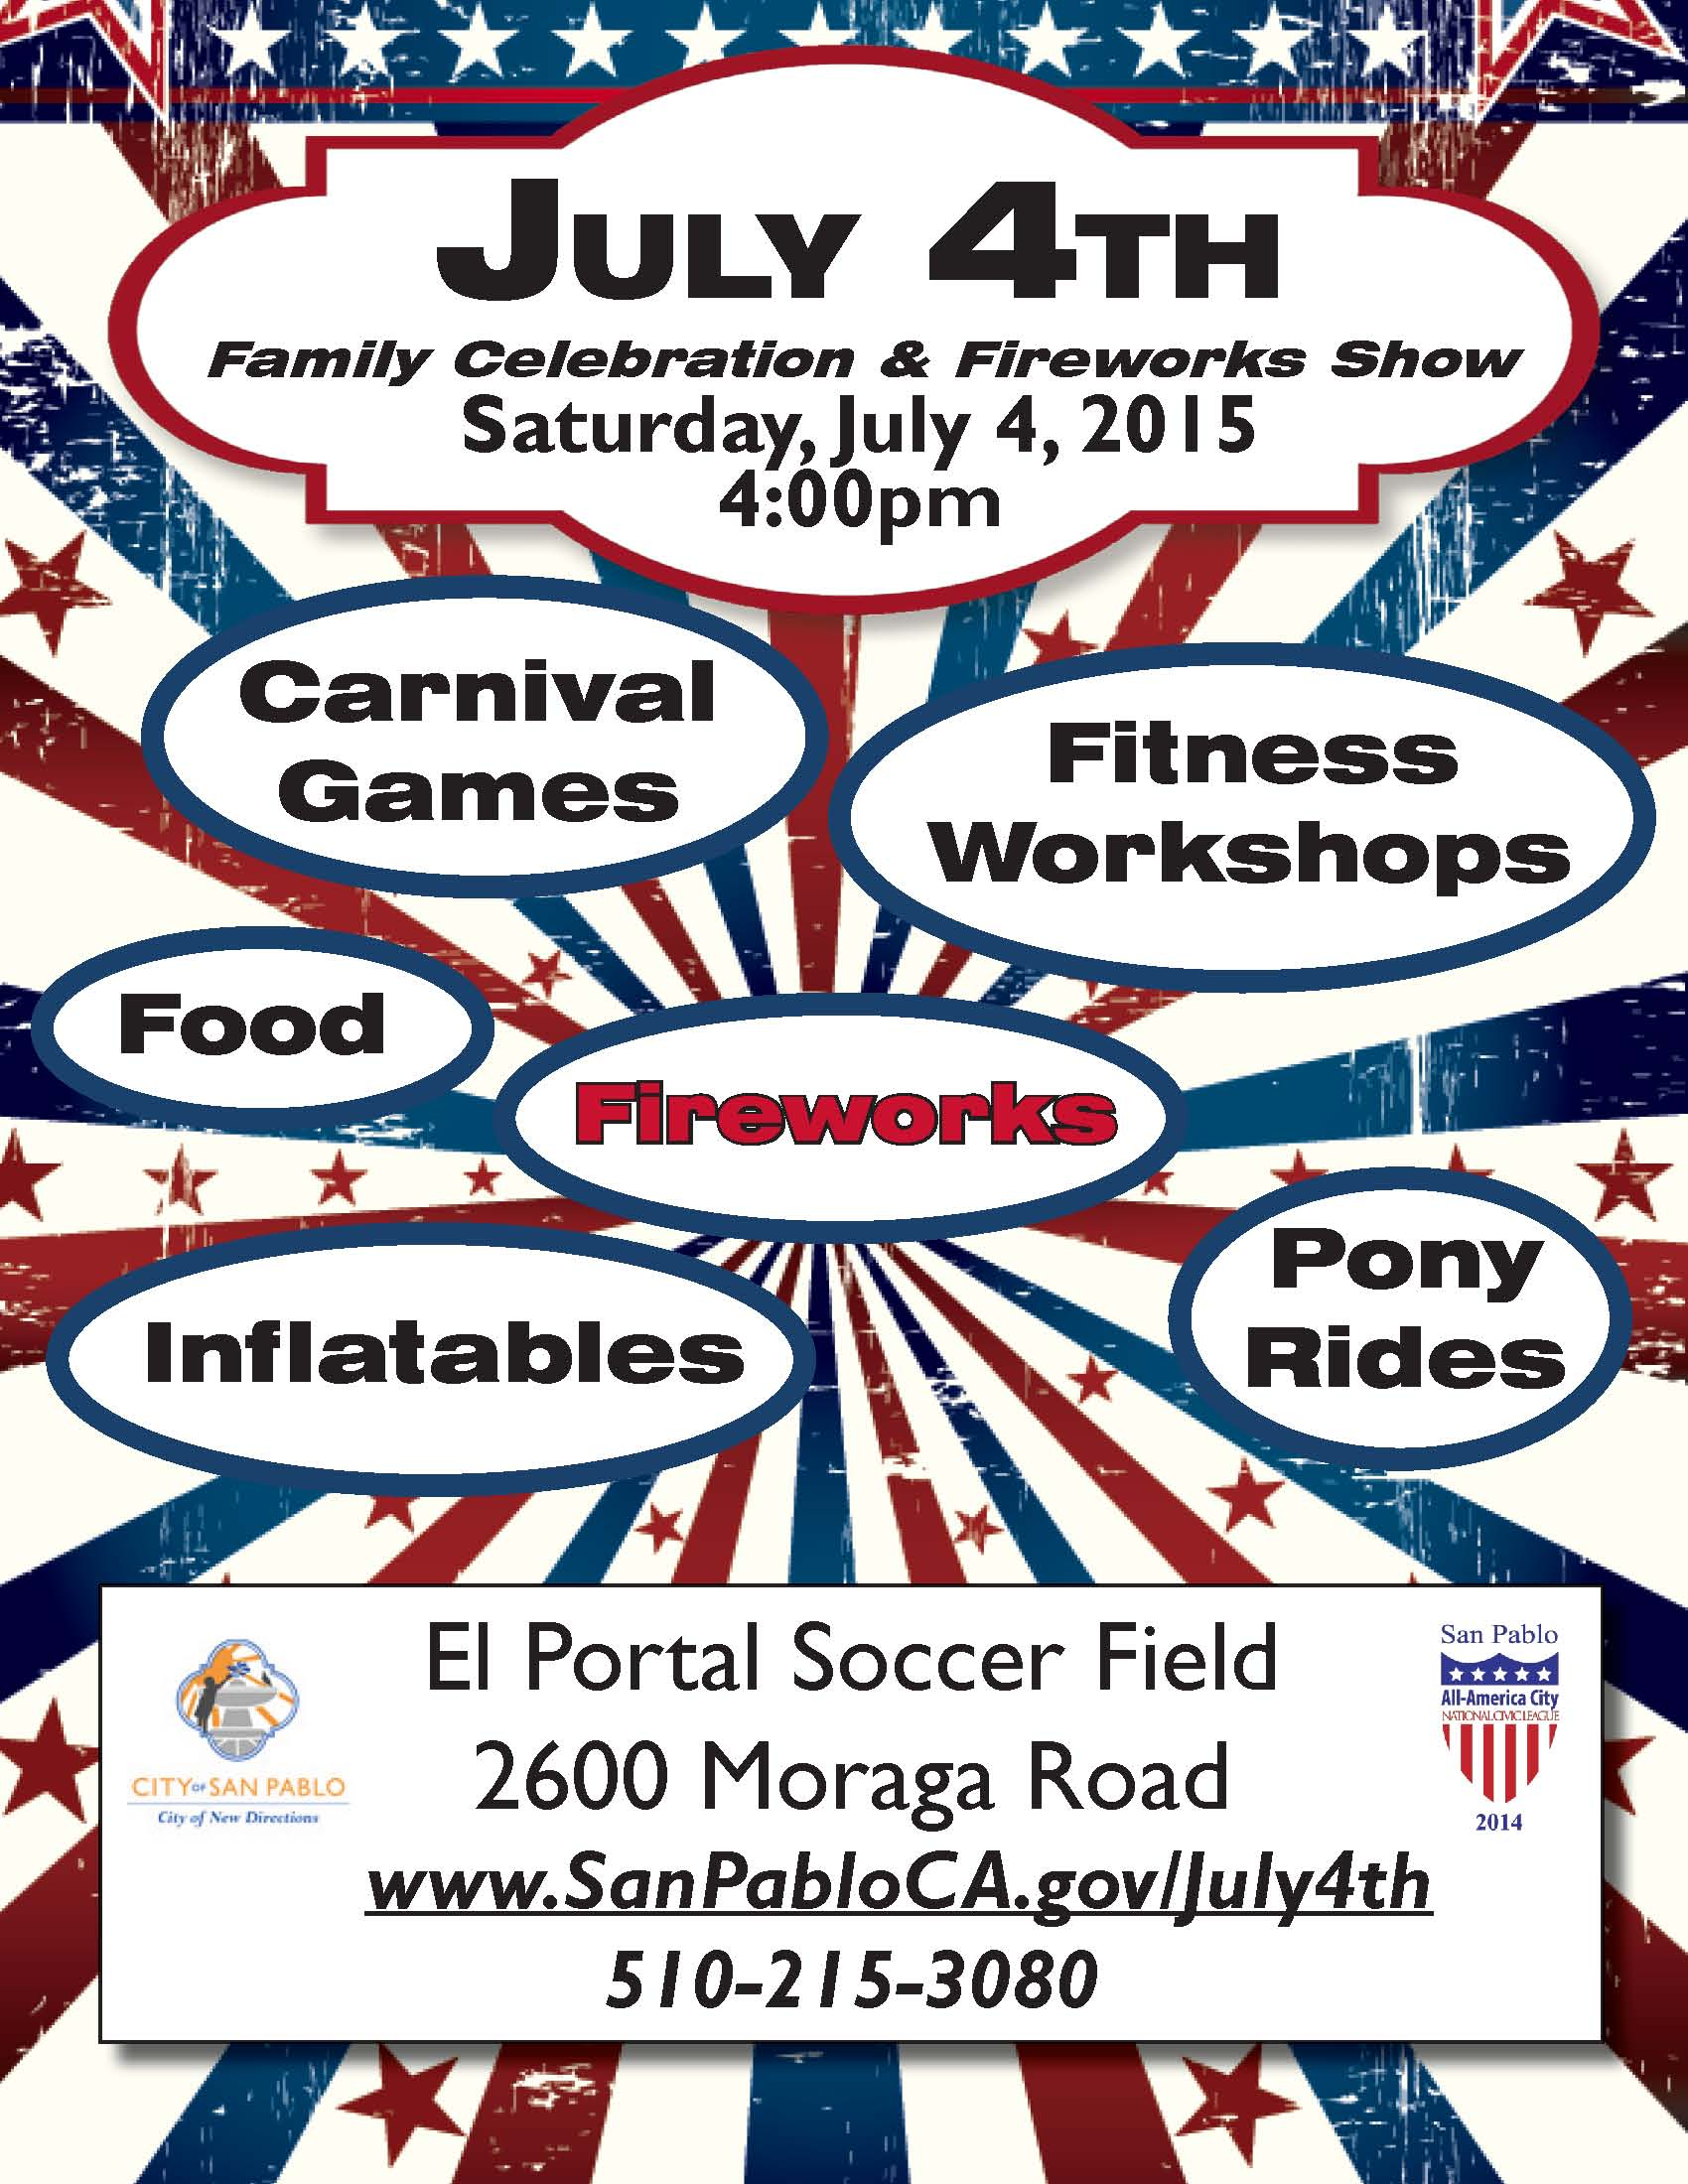 San Pablo | 4th of July Family Celebration & Fireworks Show | 2015